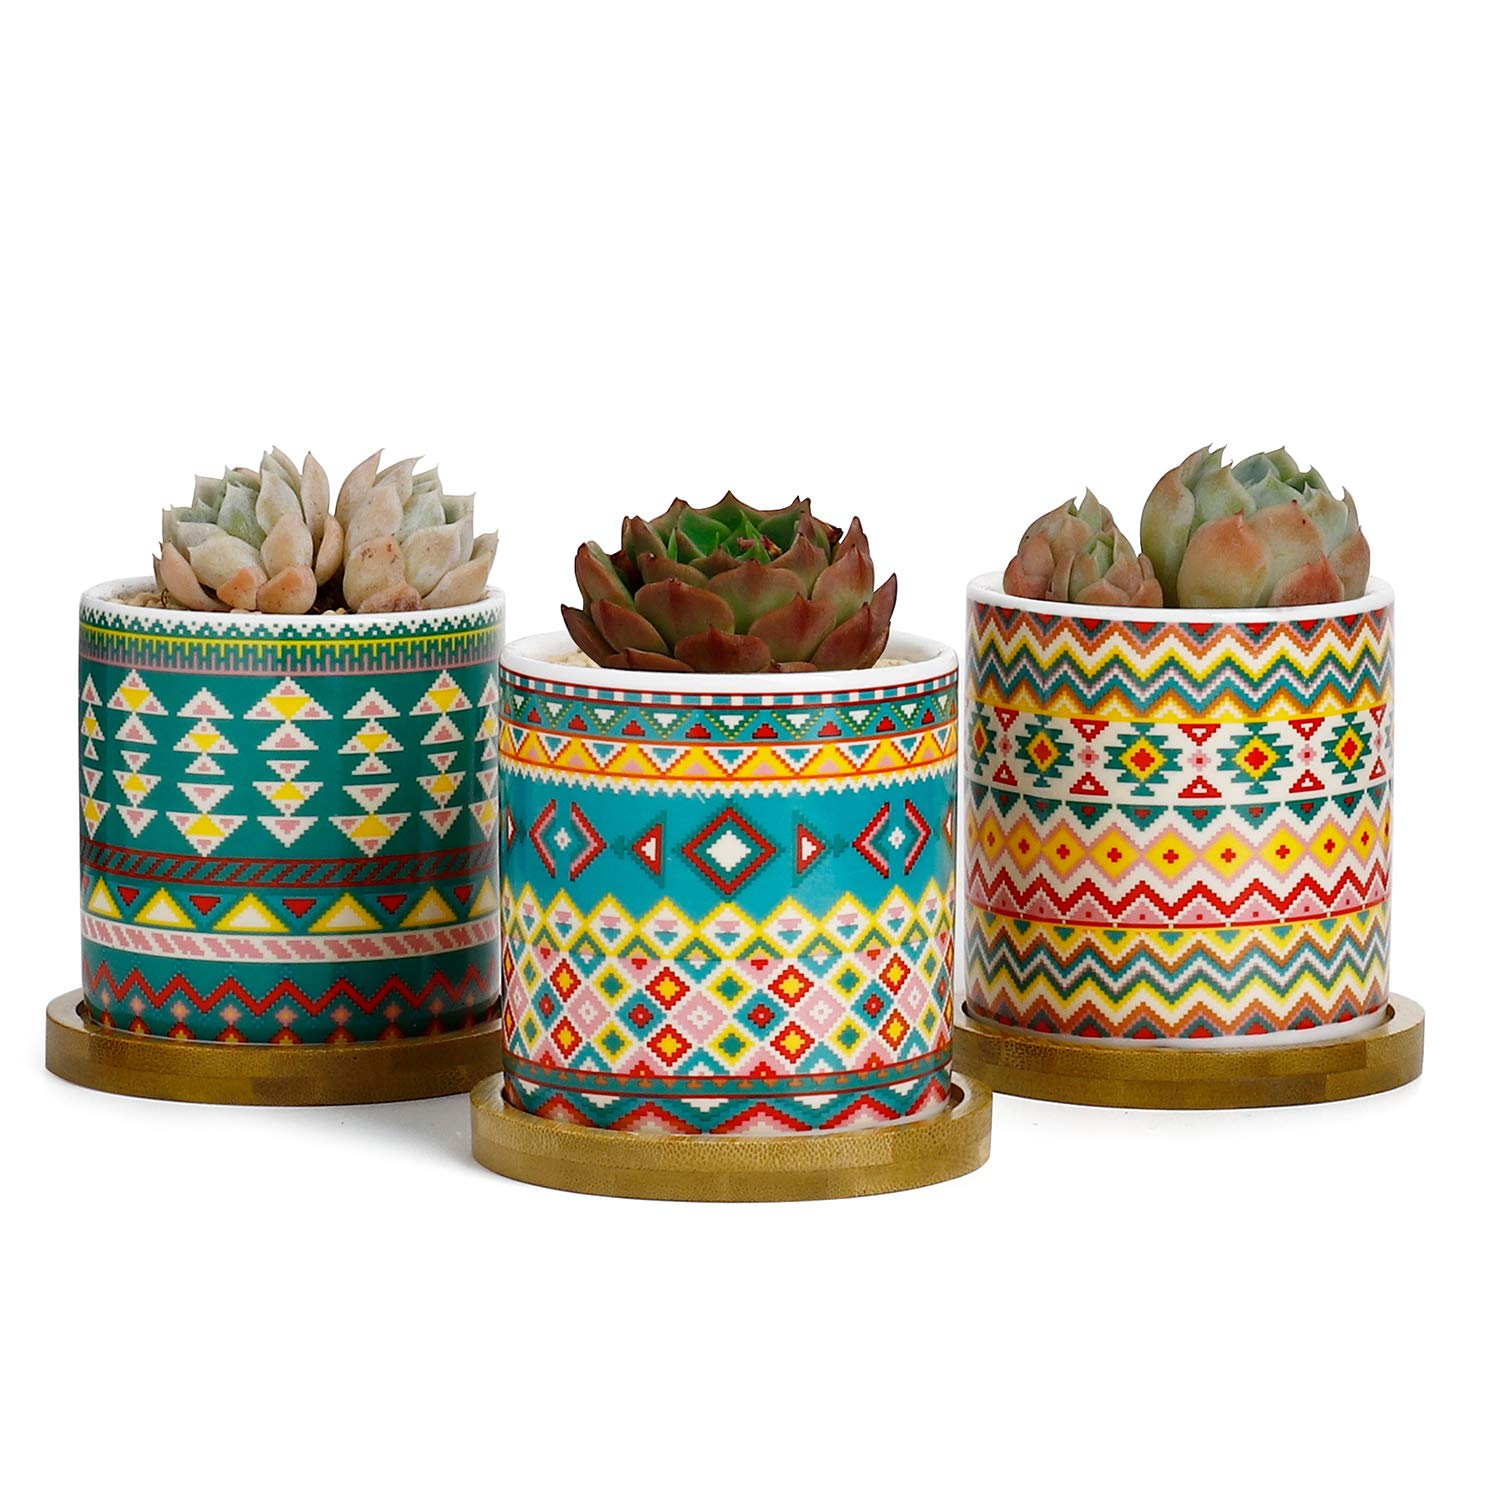 Greenaholics Succulent Plant Pots – 3 Inch Cylinder Bohemian Ceramic Planter for Cactus, Succulent Planting, with Drainage Hole, Bamboo Trays, Set of 3